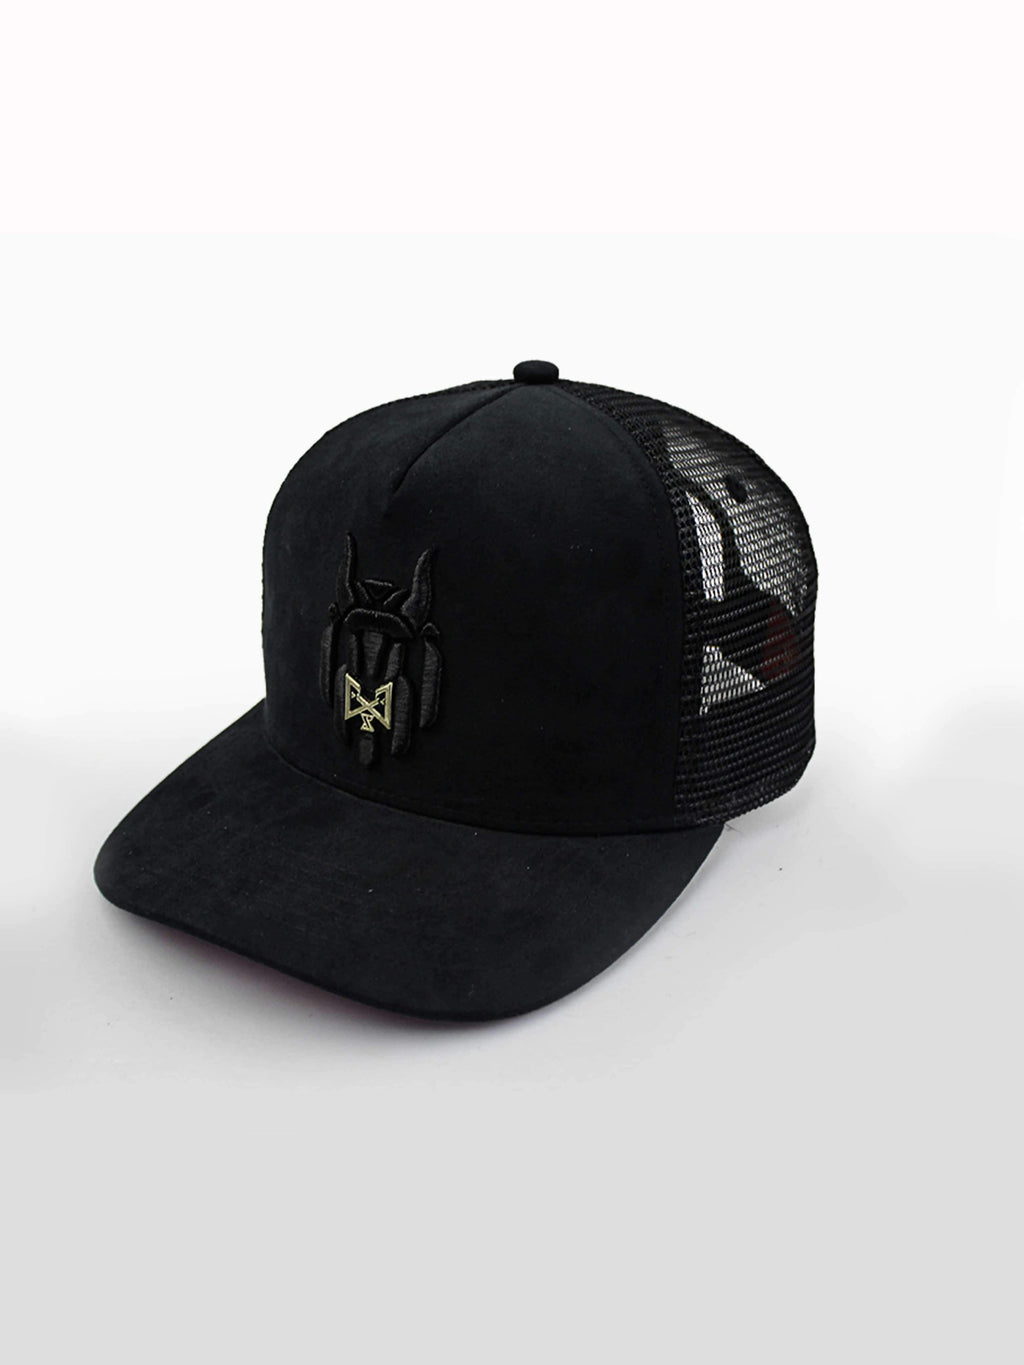 MEN CAP WOLVEZ NOT SHEEP SUEDE TRUCKER - Brit Boss